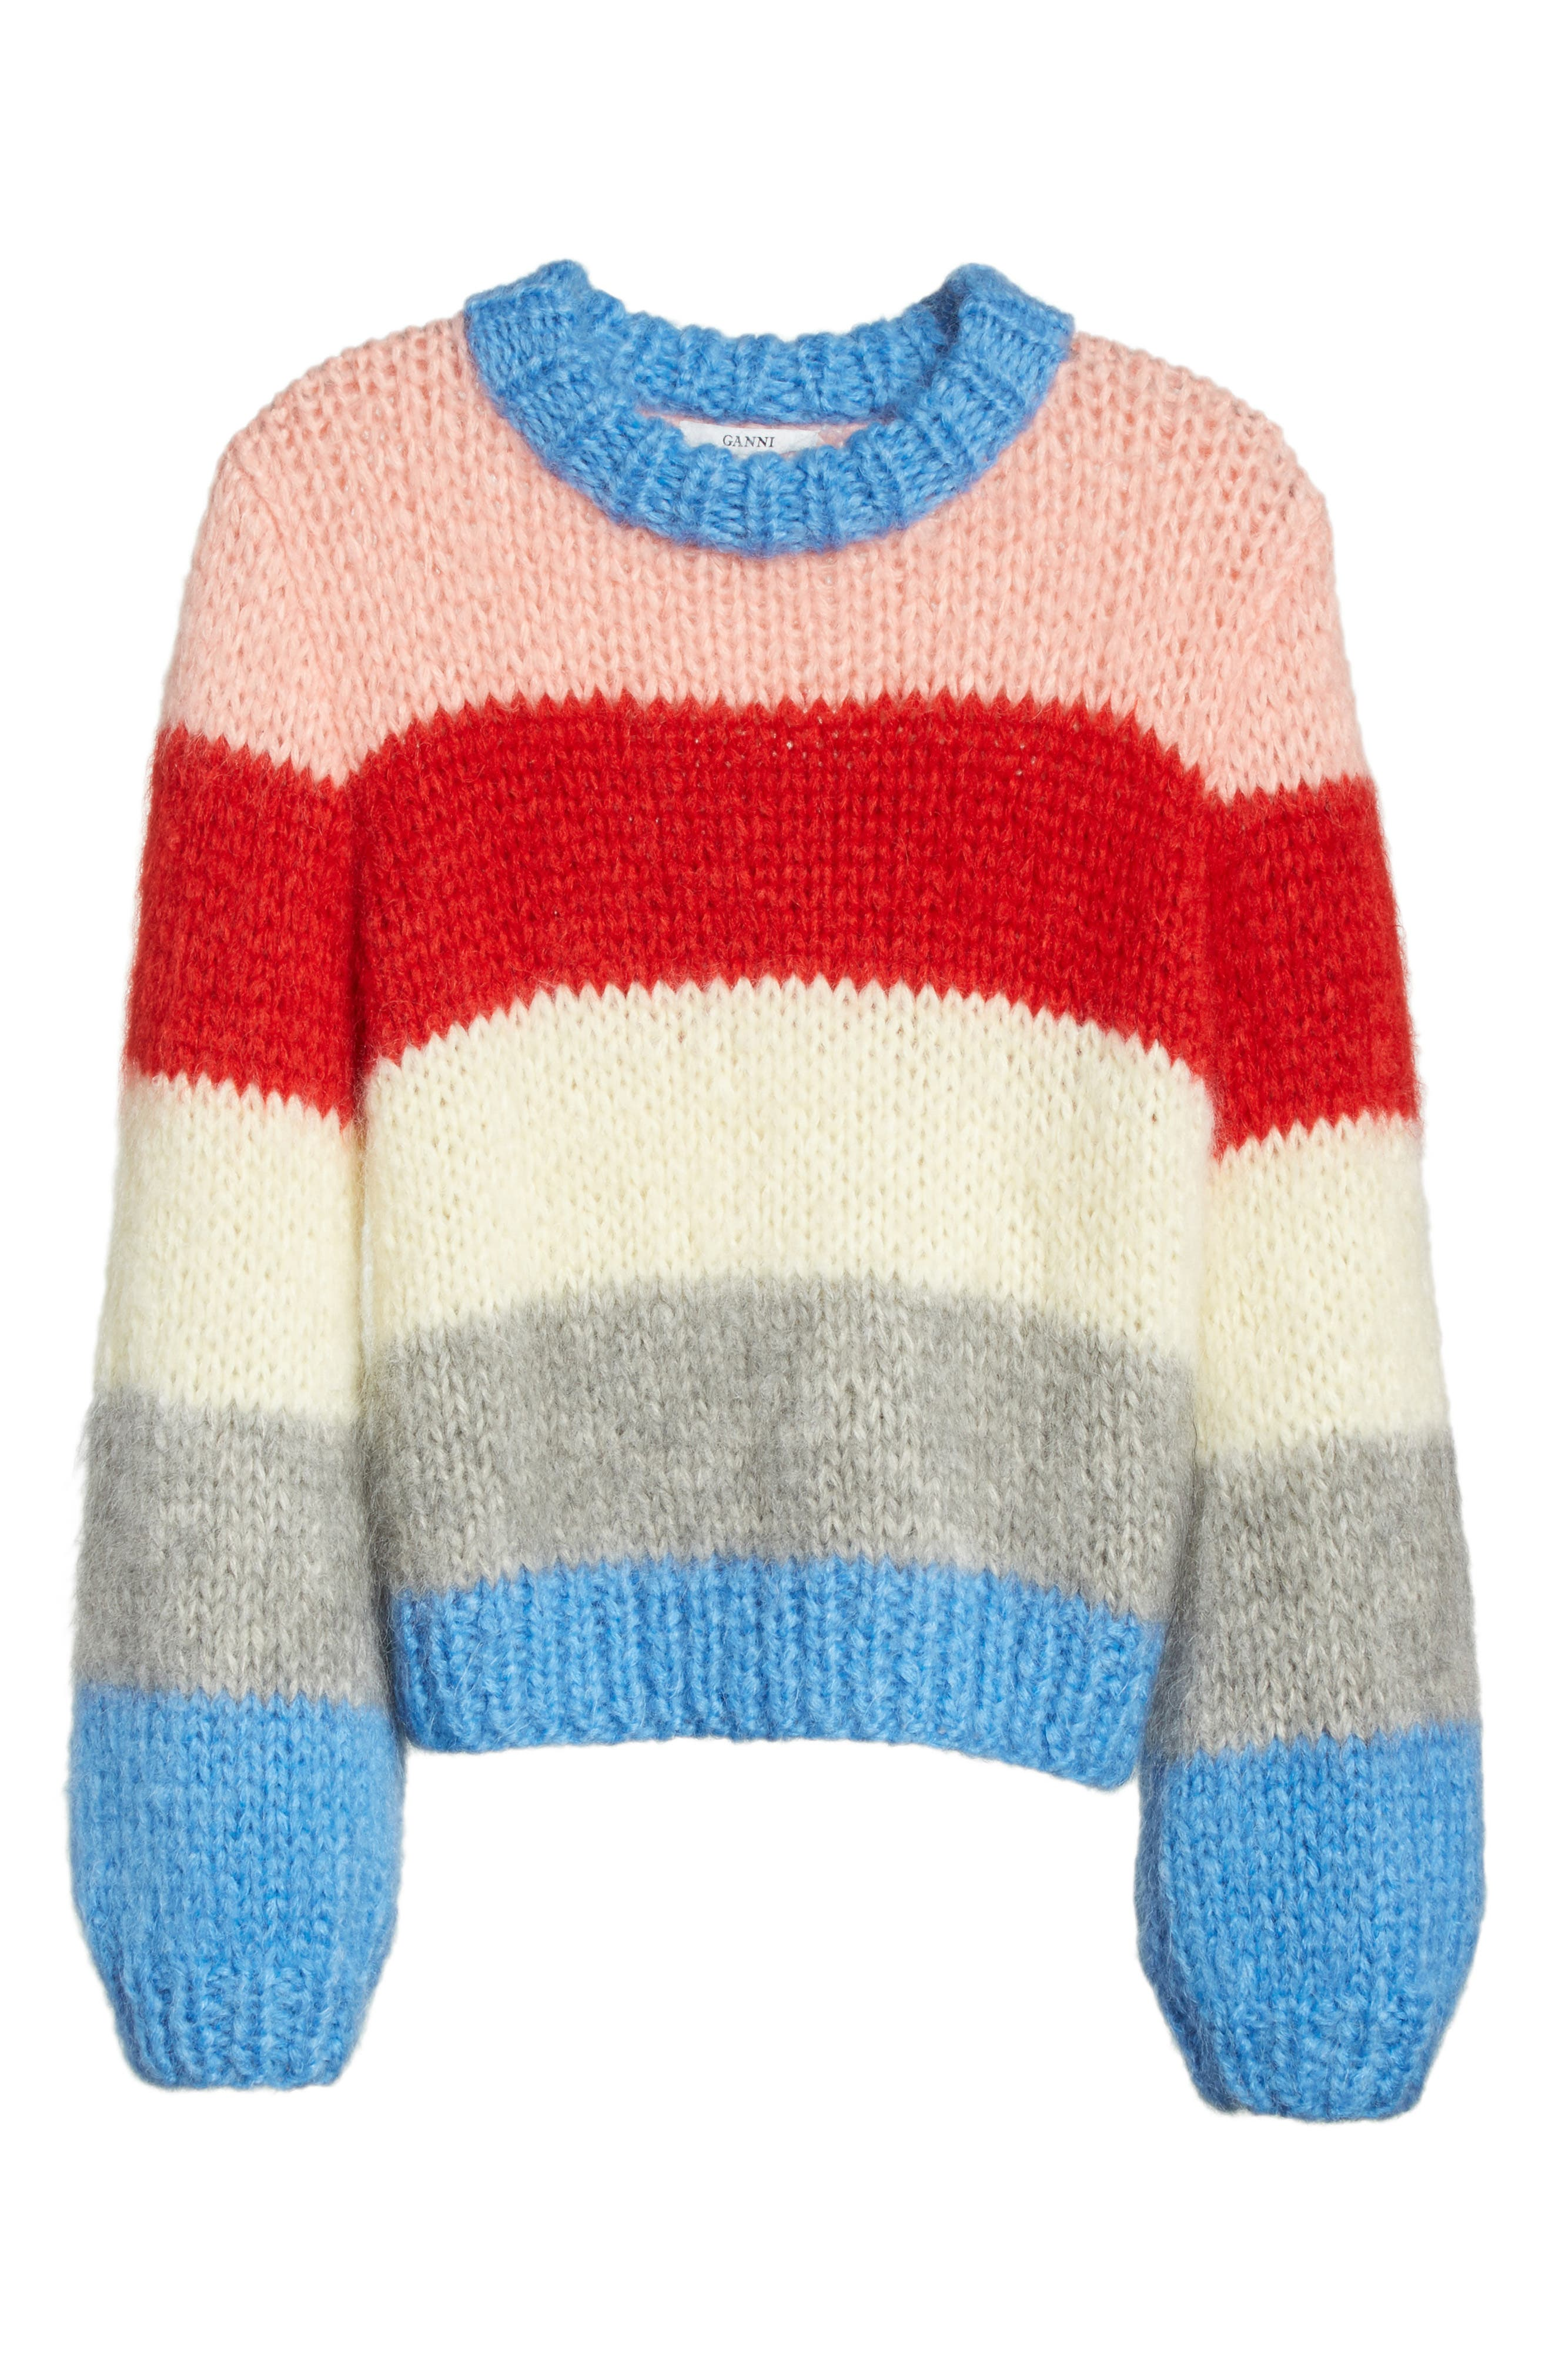 Julliard Multistripe Sweater,                             Alternate thumbnail 6, color,                             400